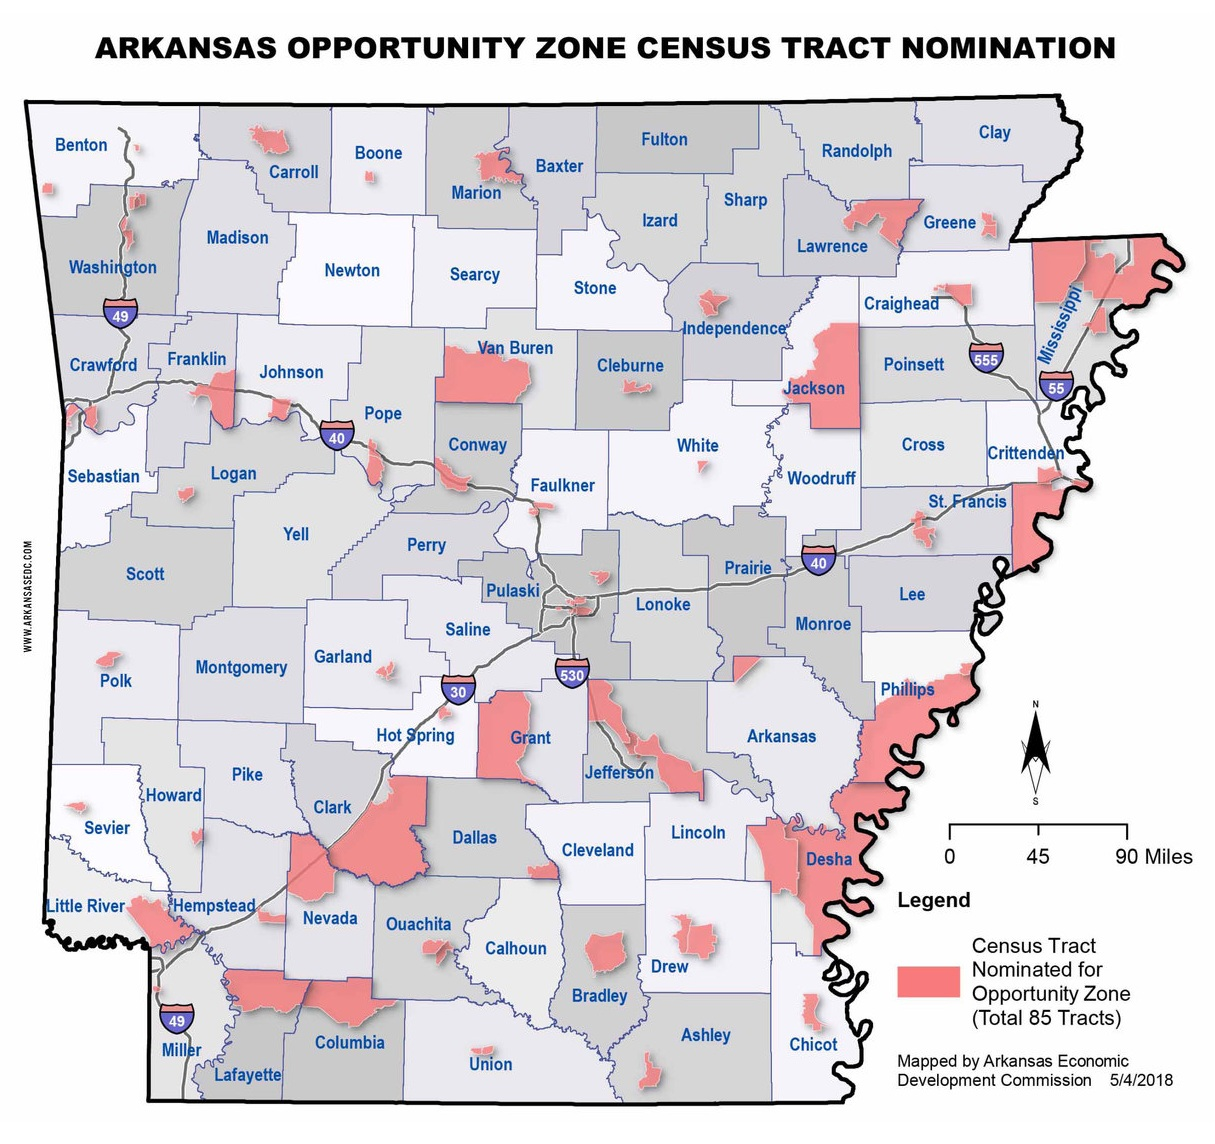 Governor Asa Hutchison designated 85 Opportunity Zones in 2018. More information is available from the Business Finance and Incentives Division at the Arkansas Economic Development Commission.